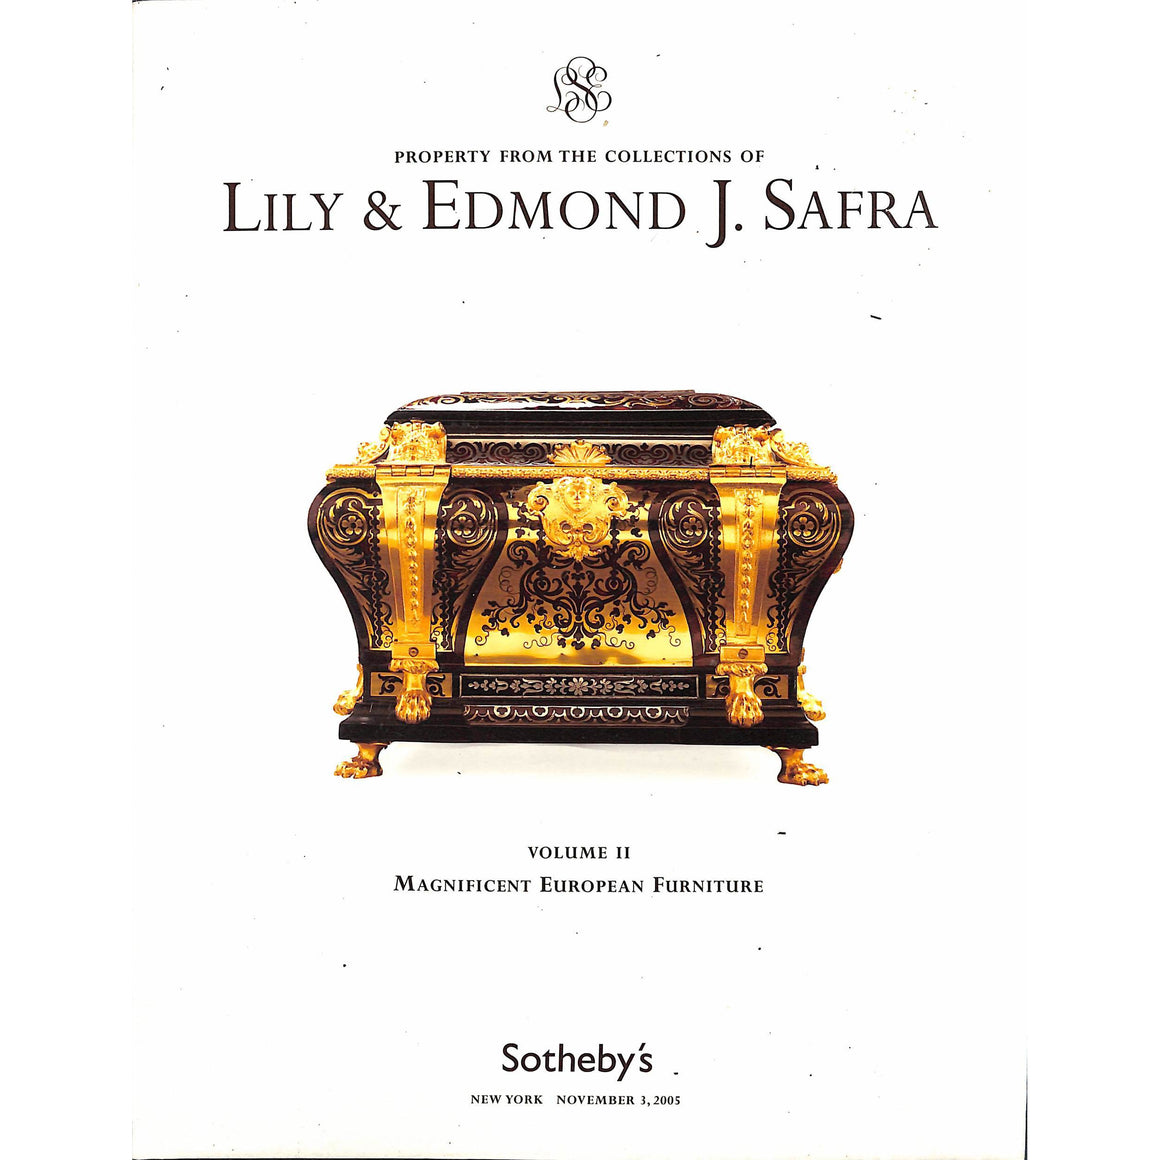 Property From the Collections of Lily & Edmond J. Safra Volume II